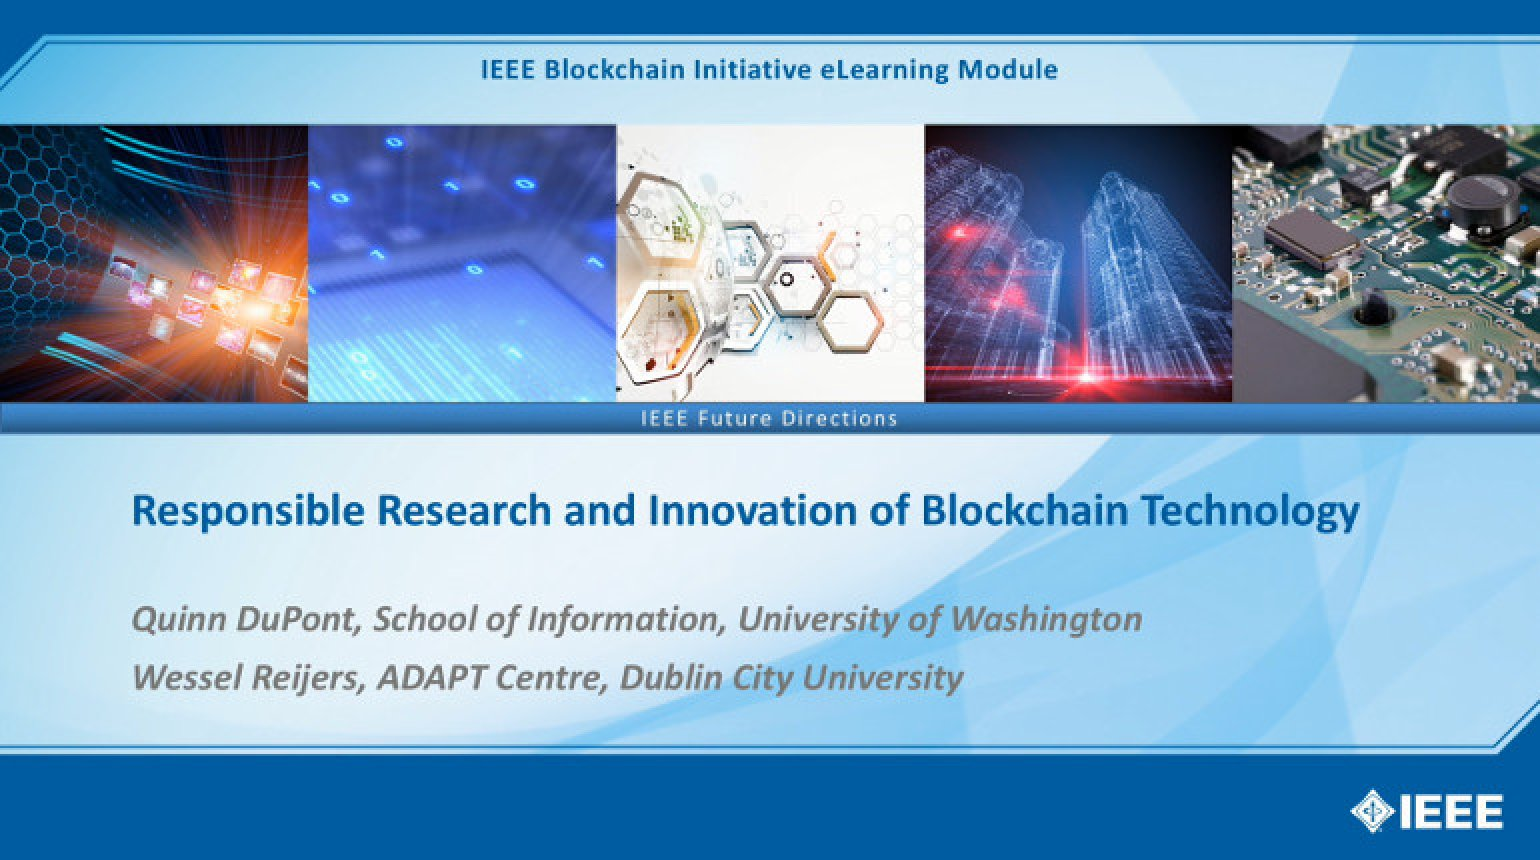 Responsible Research and Innovation of Blockchain Technology